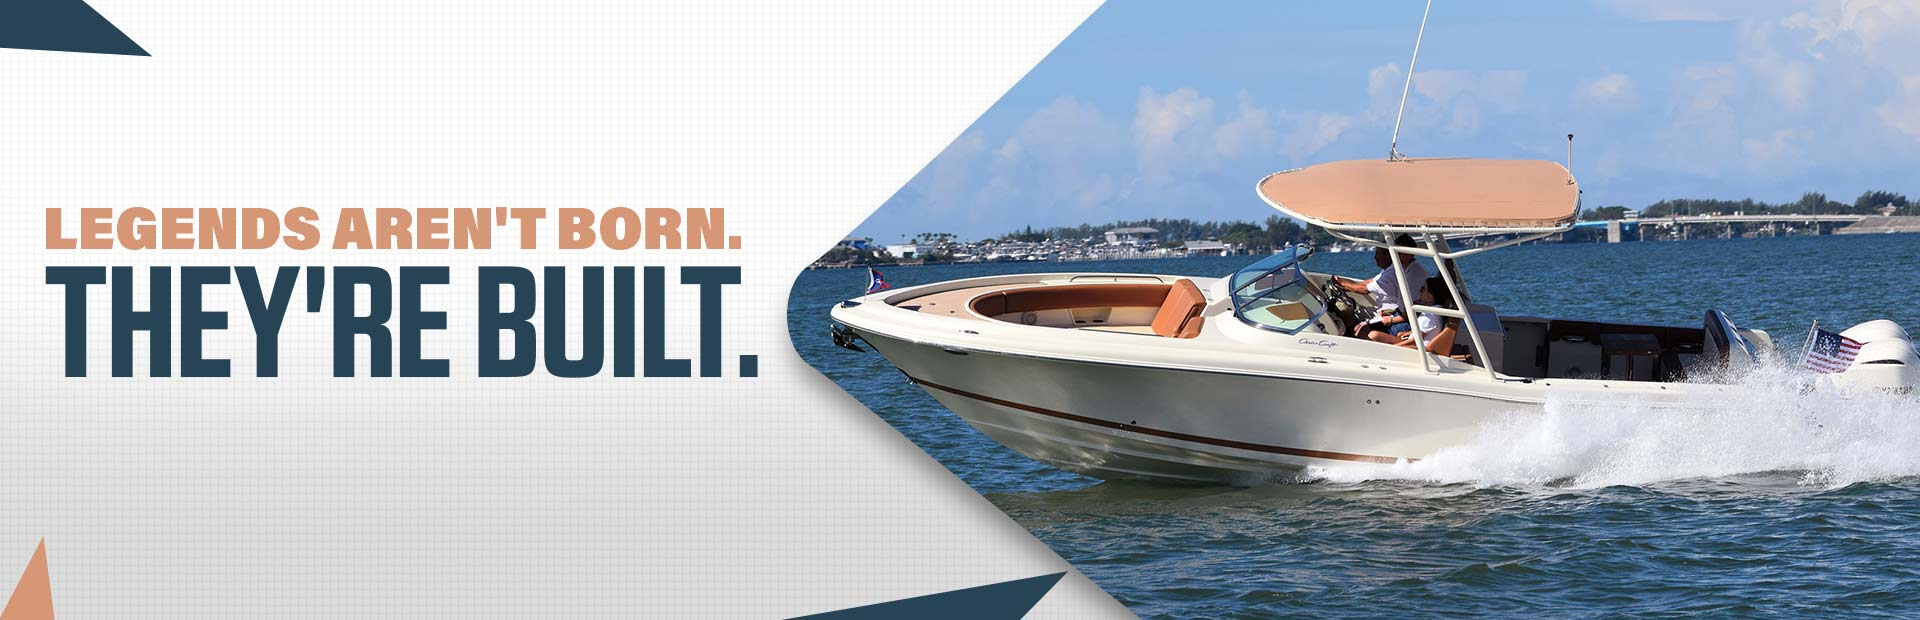 2018 Chris Craft Calypso 30: Click here to view the model.